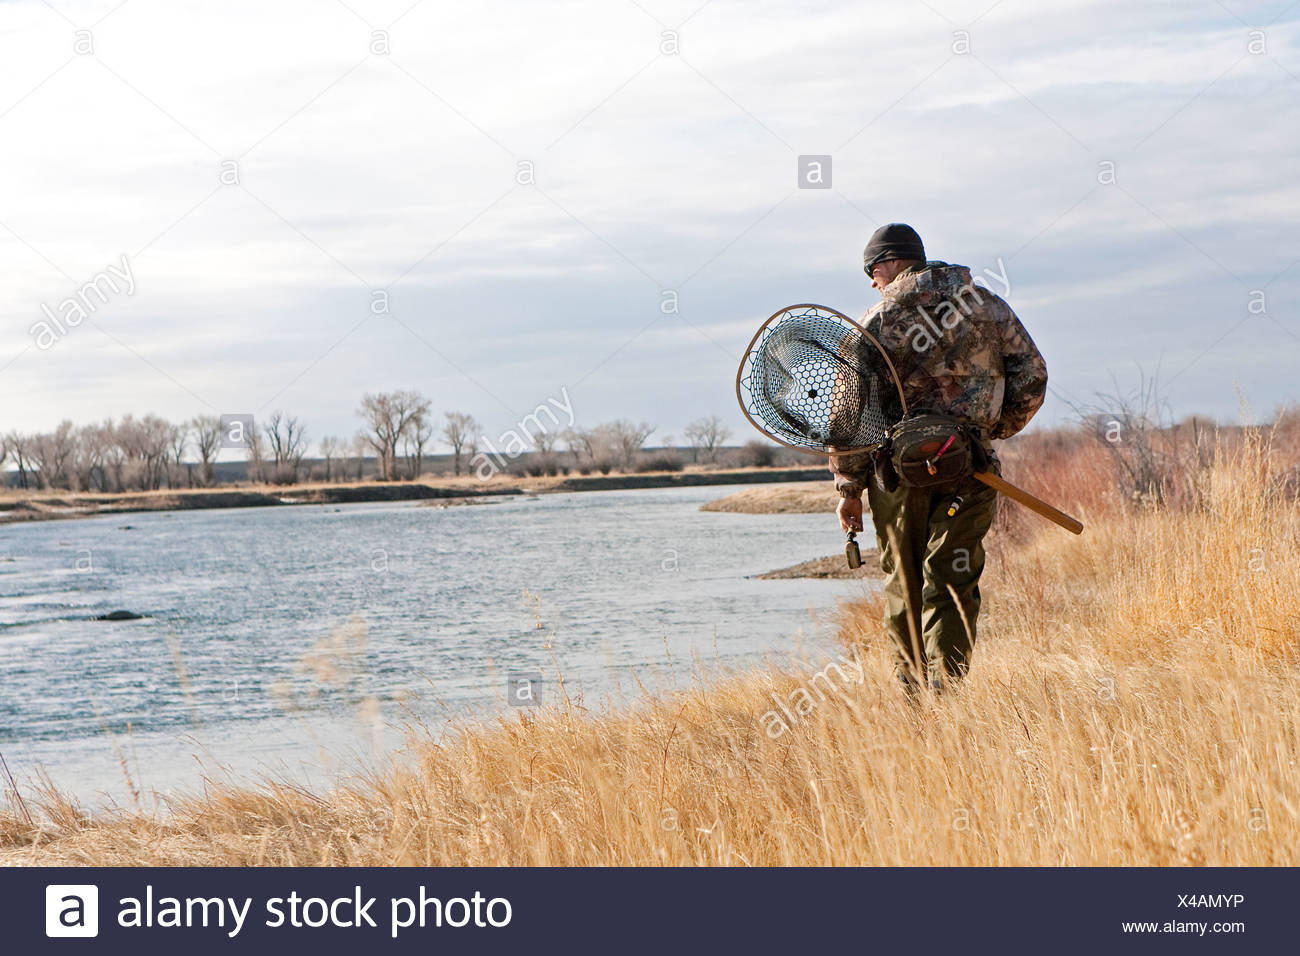 A man searches for trout while walking along a river. - Stock Image